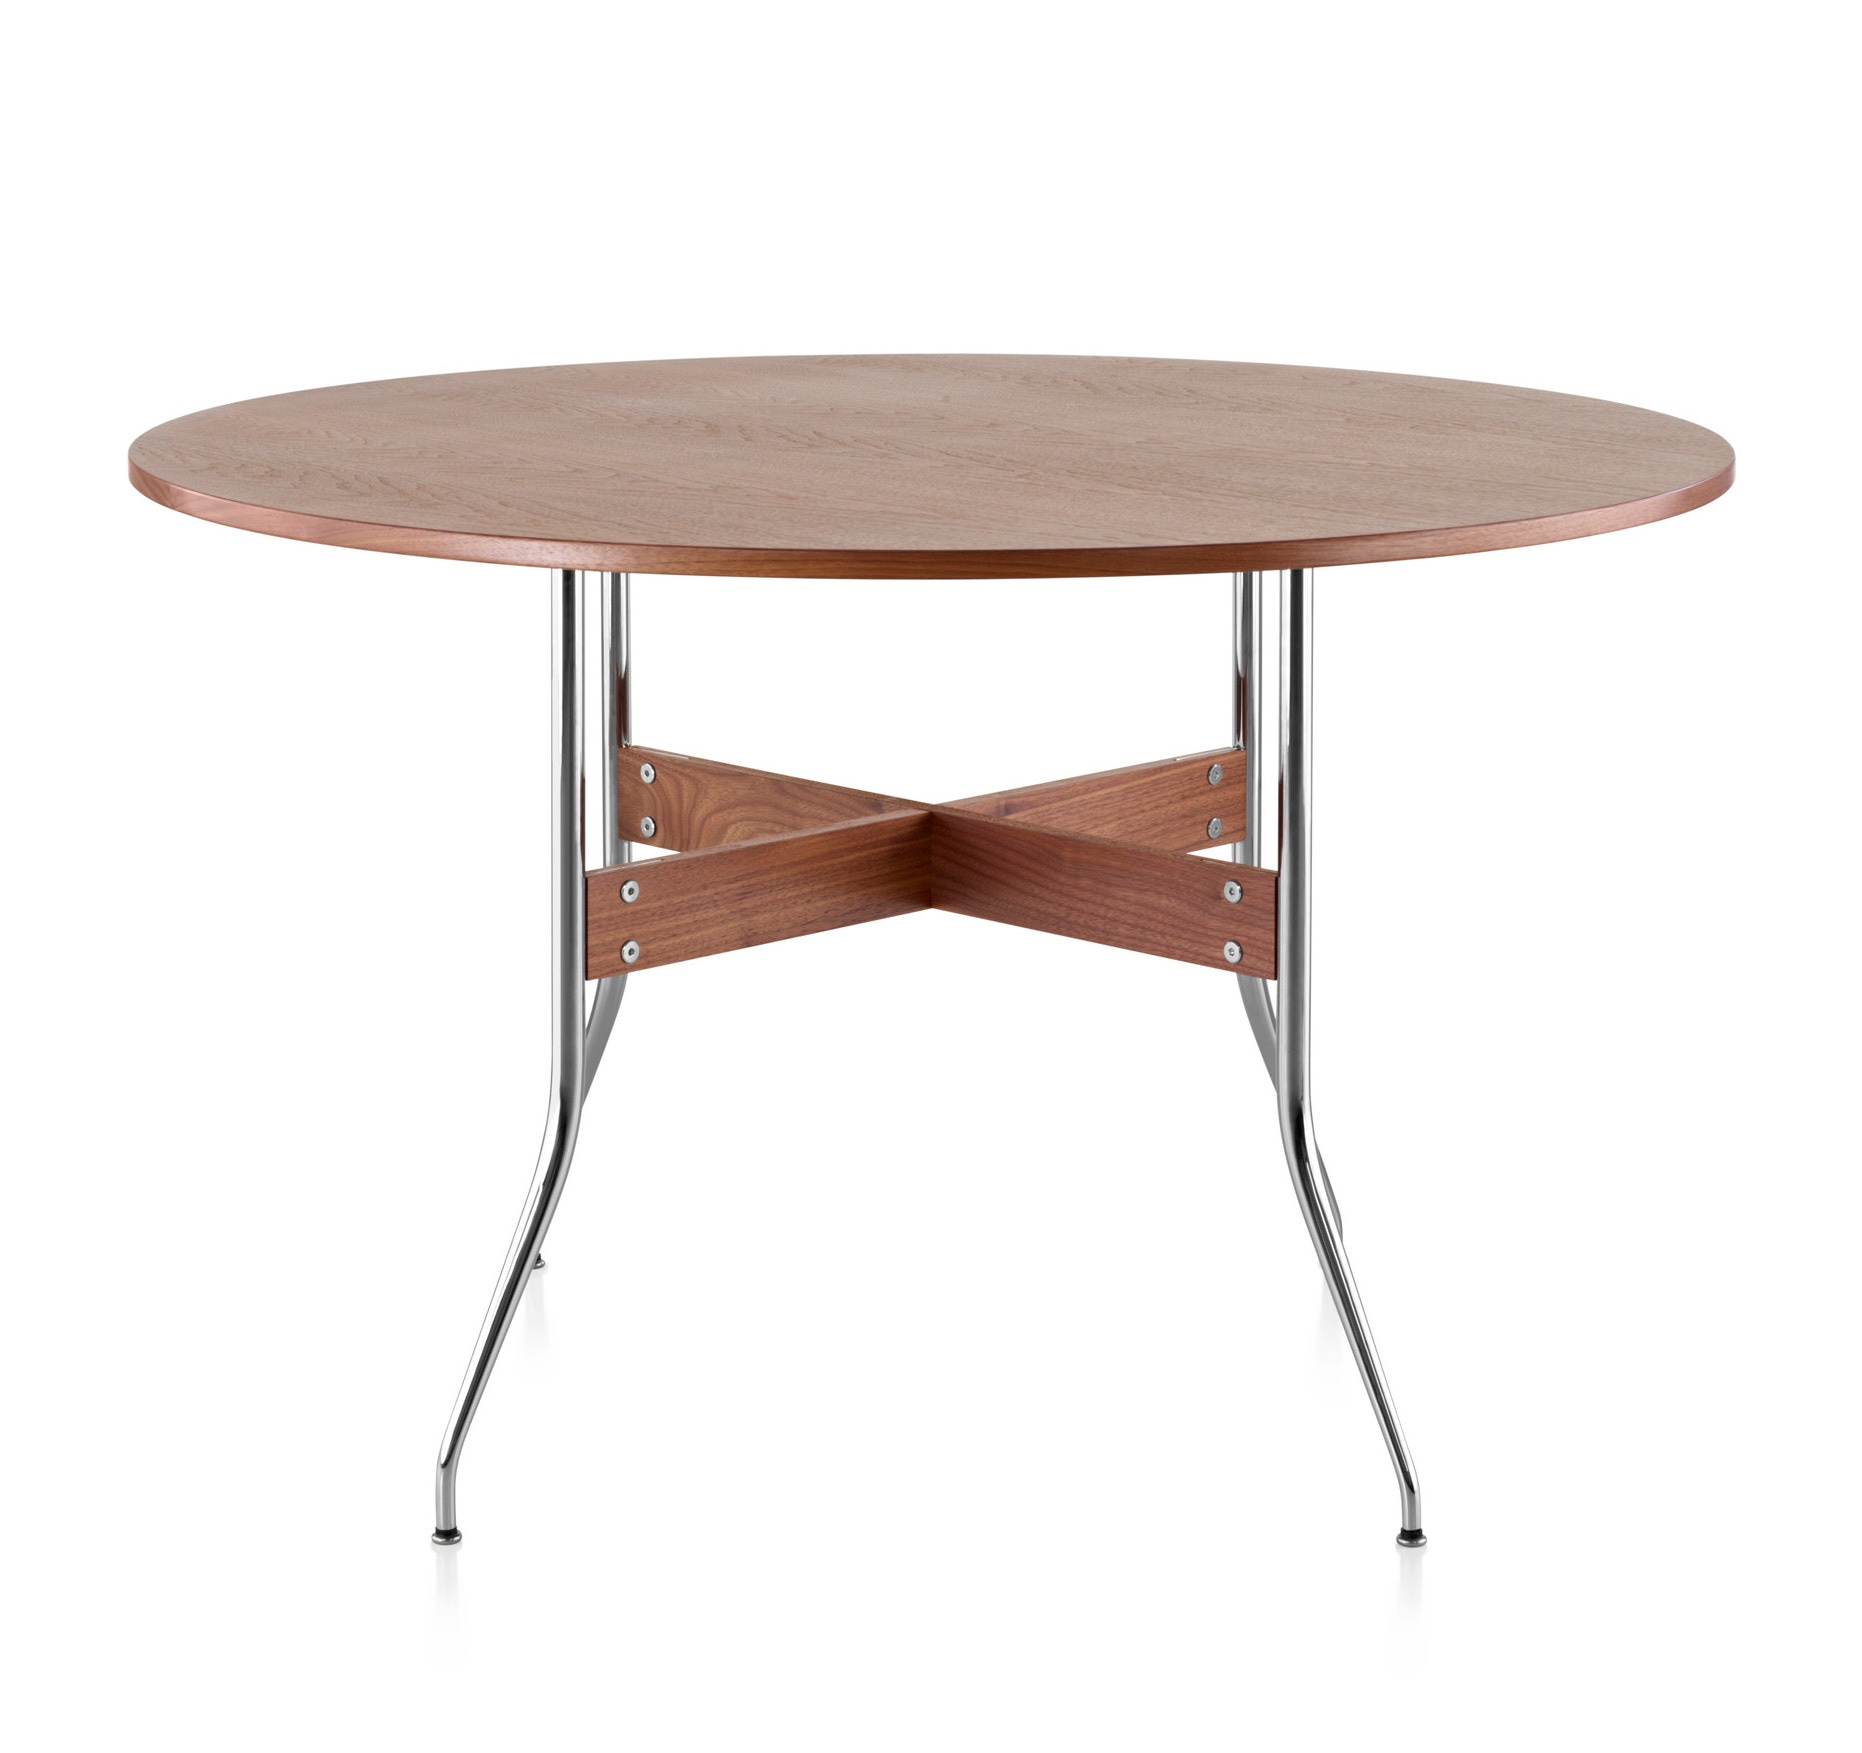 Herman miller nelson swag leg dining table round gr shop for Nelson swag leg table